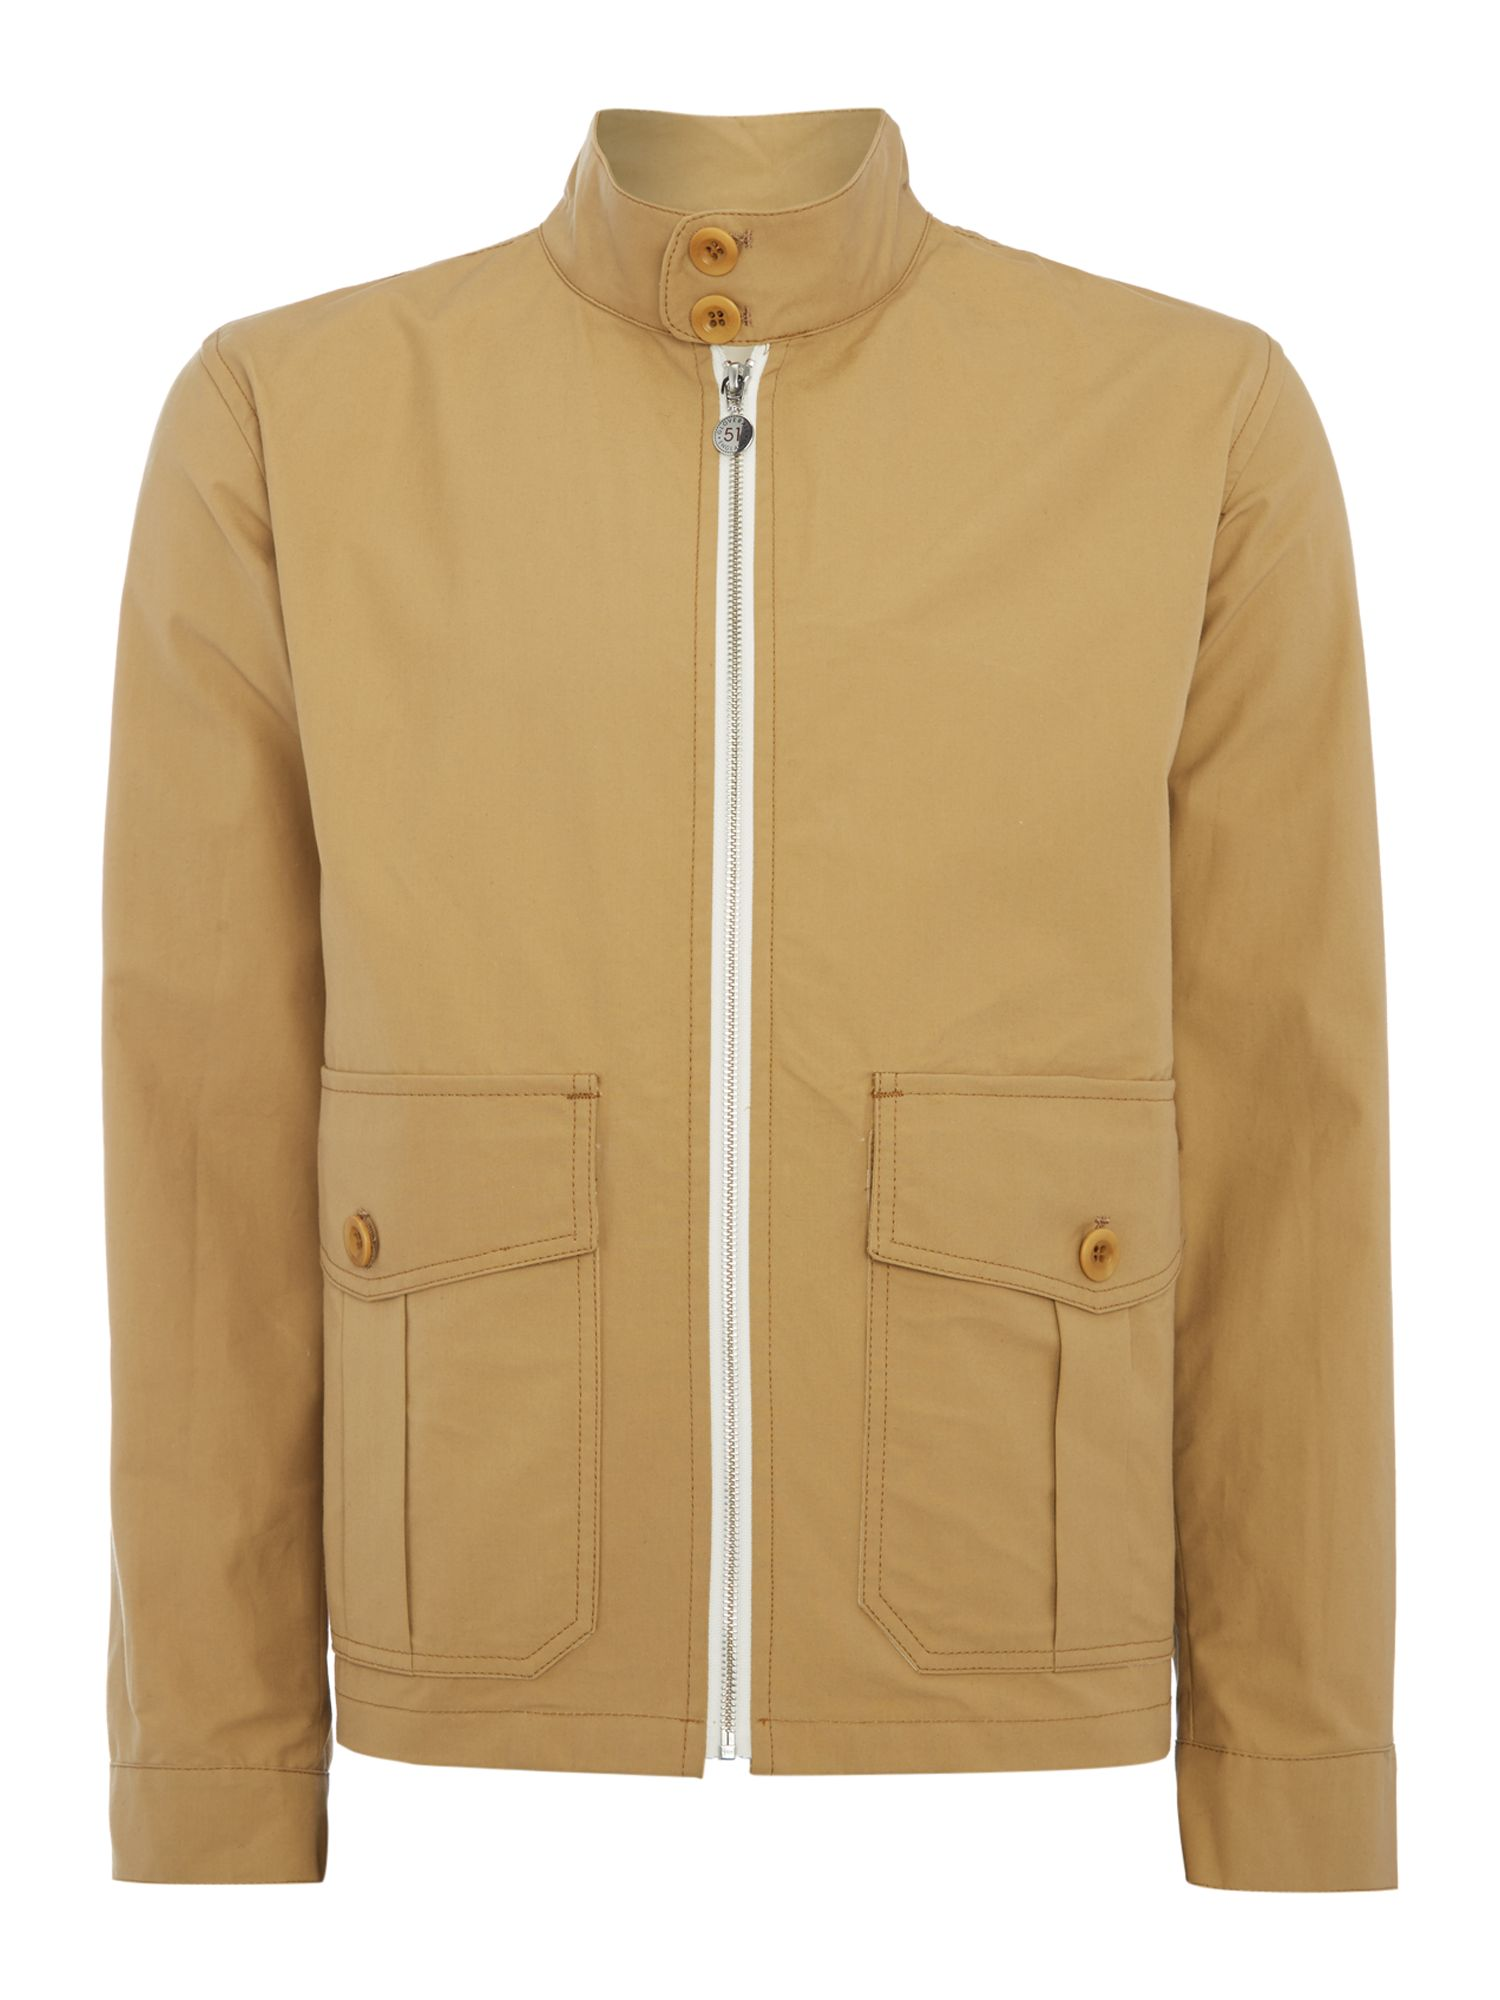 Men's Vintage Style Coats and Jackets Mens Gloverall Unlined zipped harrington jacket £225.00 AT vintagedancer.com